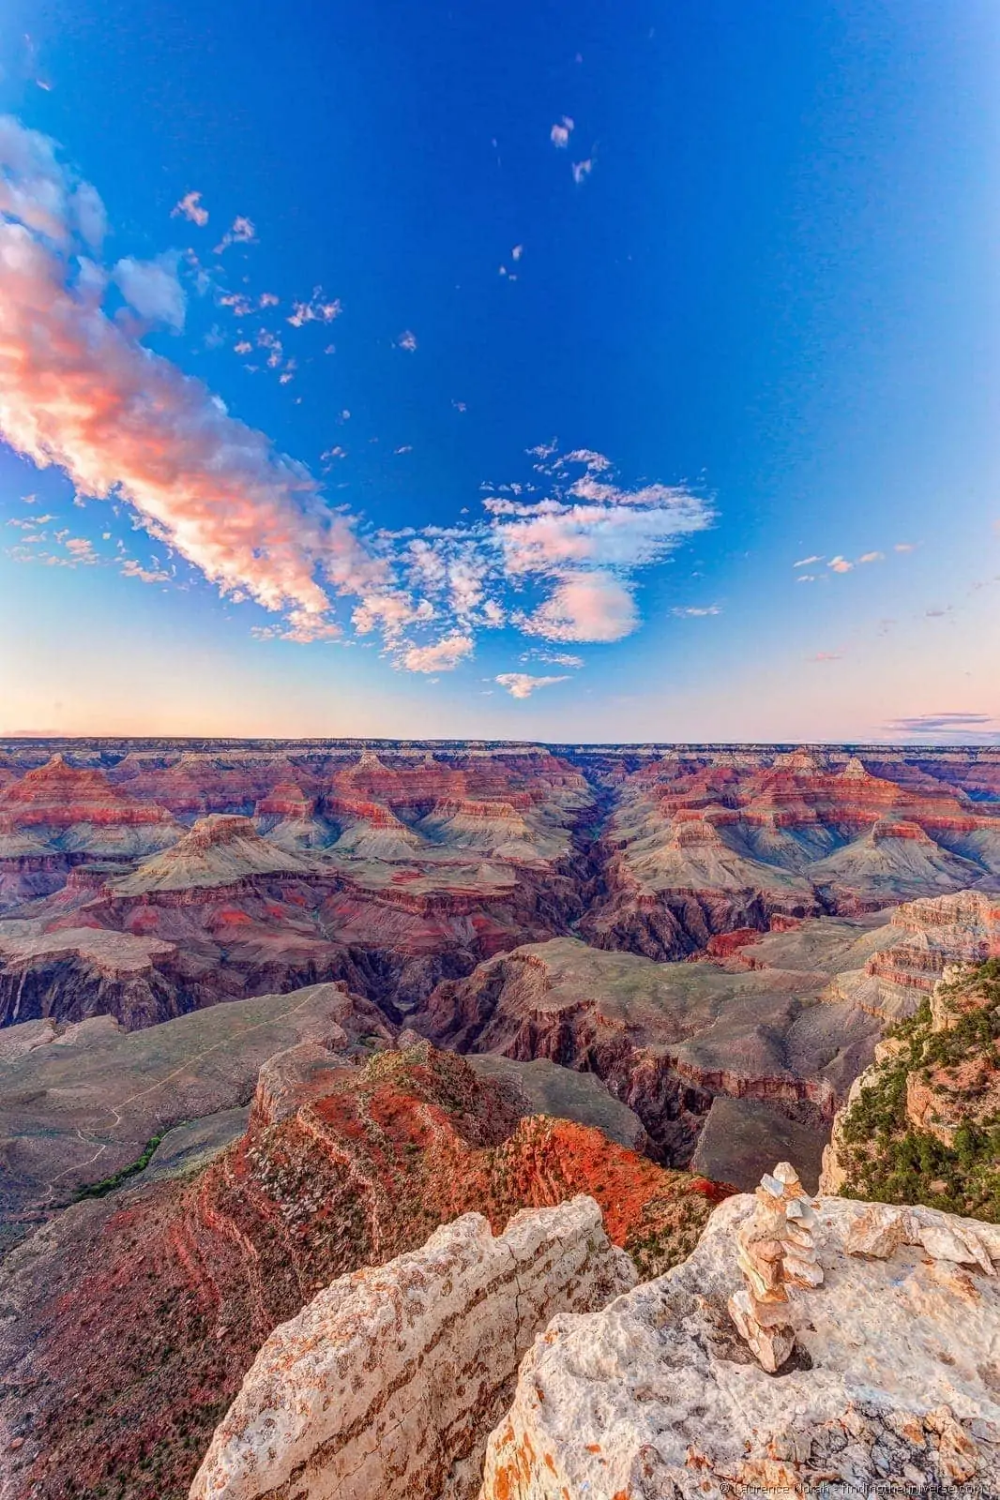 Sunrise and Sunset at the Grand Canyon: Best Photography Locations - Finding the Universe